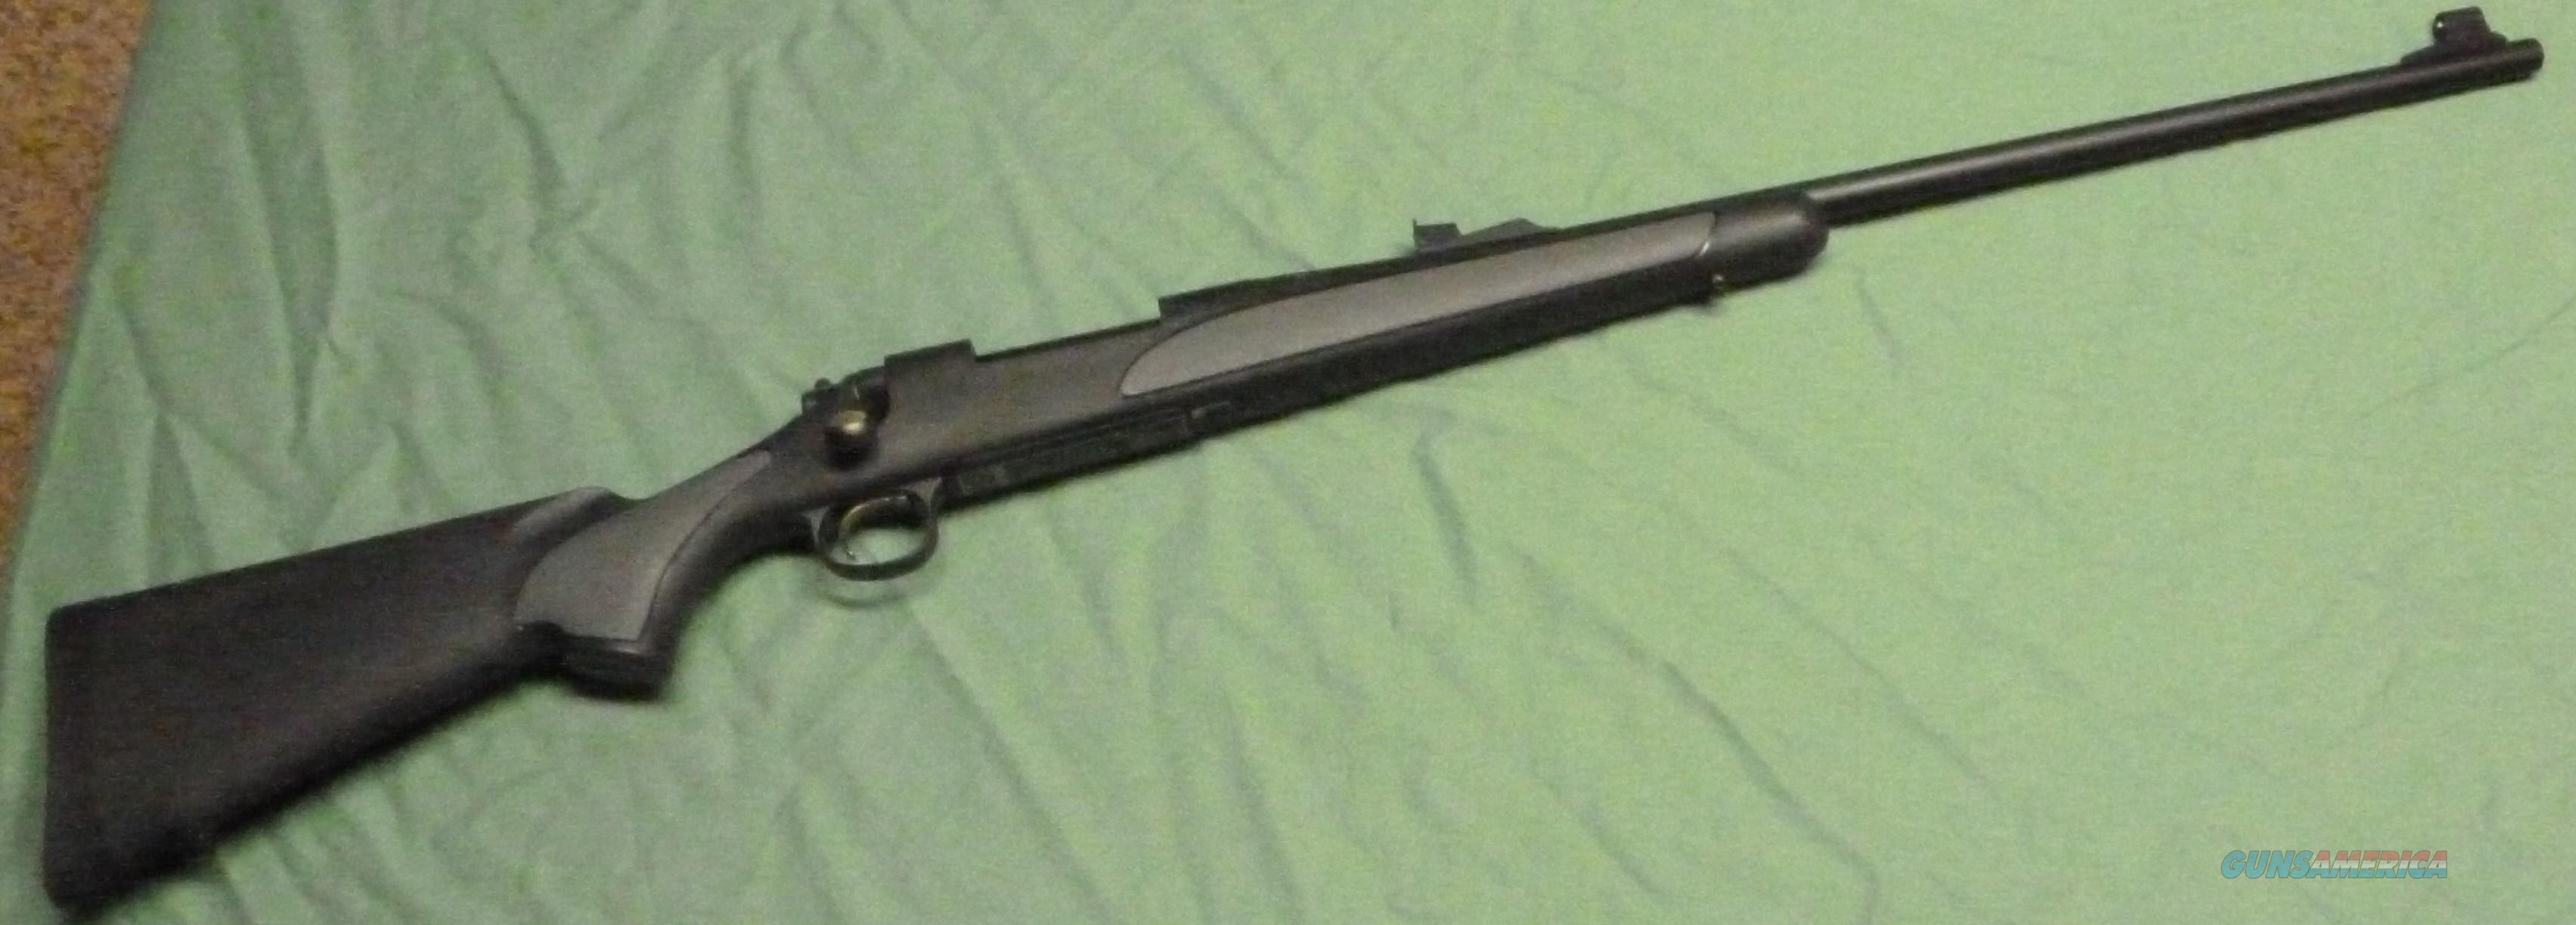 Remington 700 XCR II 375 RUM --  PRICE REDUCED!!  Guns > Rifles > Remington Rifles - Modern > Model 700 > Sporting